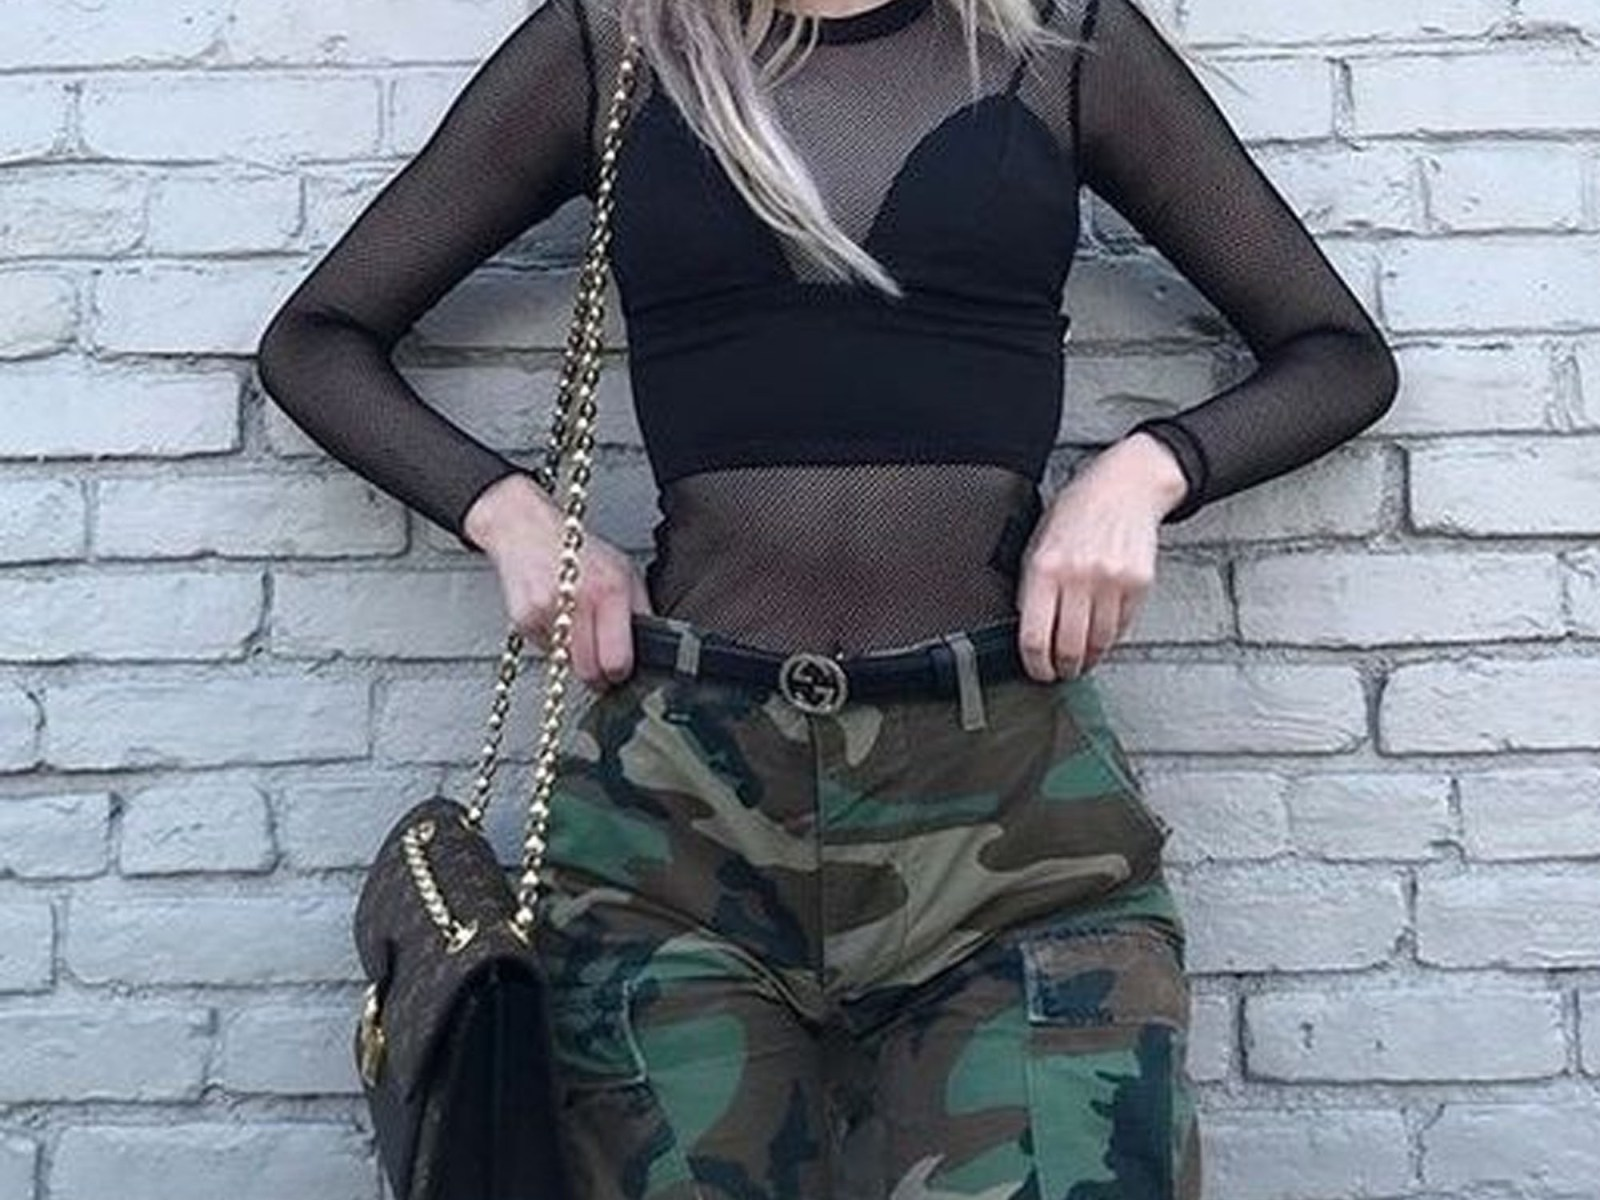 Cargo pants styles are back in! Look at our favourite styles today and see which outfits you love the most. Rock these cargo pants on your next night out!